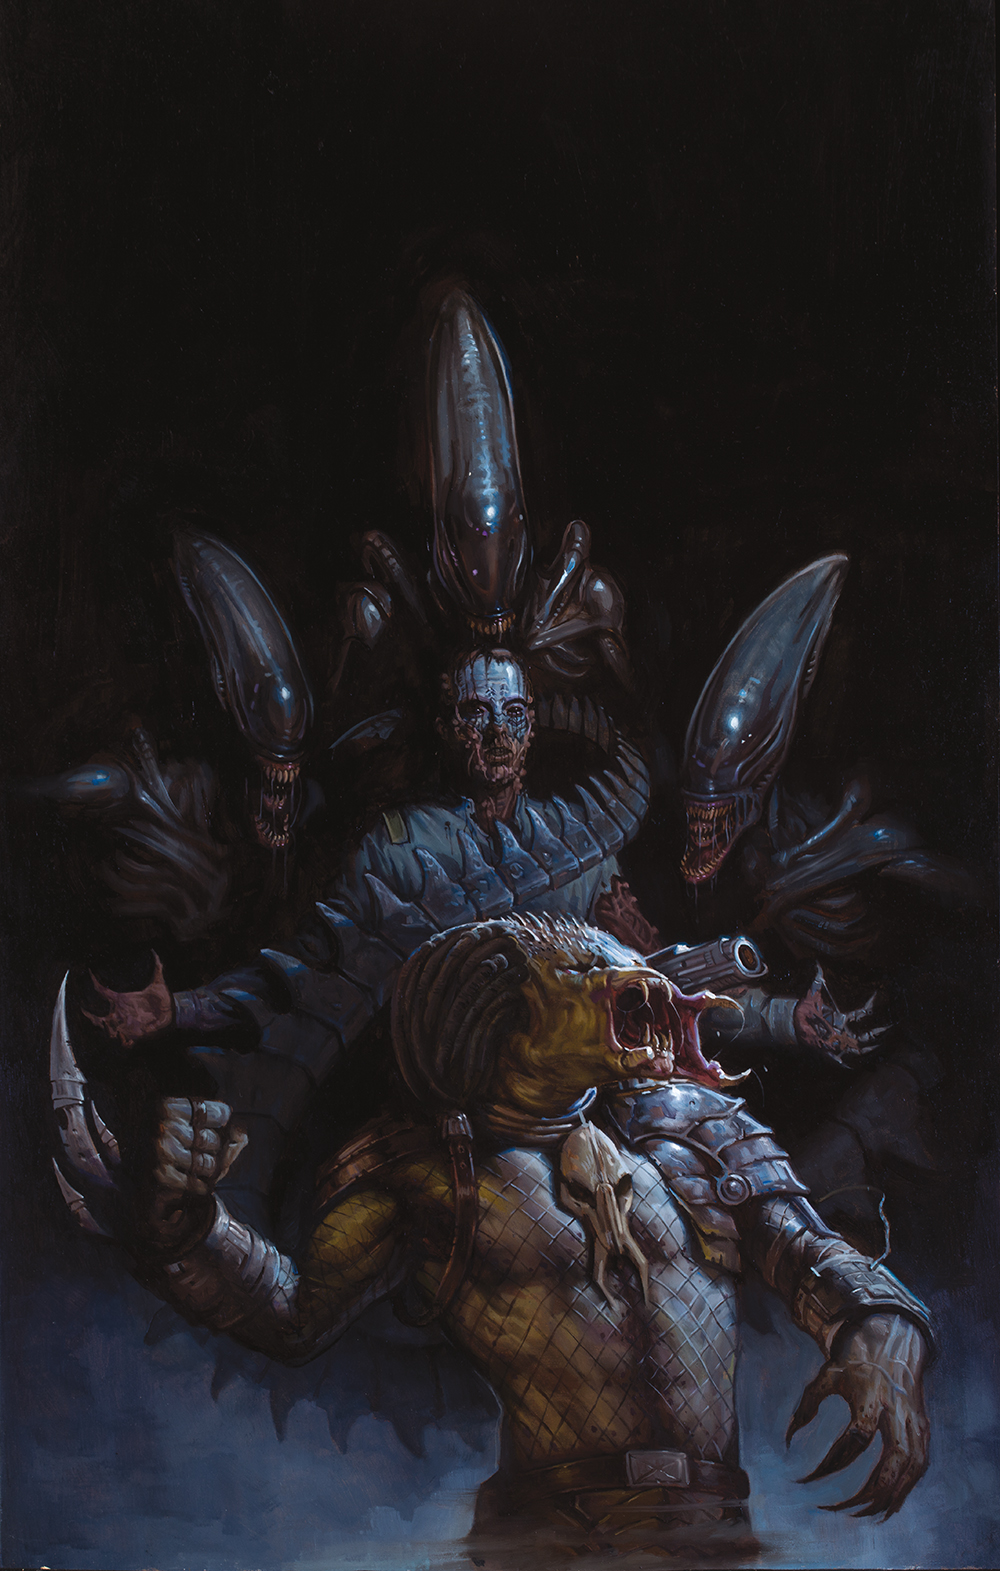 Now I can finally show you all the cover for Alien Vs. Predator #1 by EM Gist. I am a lucky lucky man.